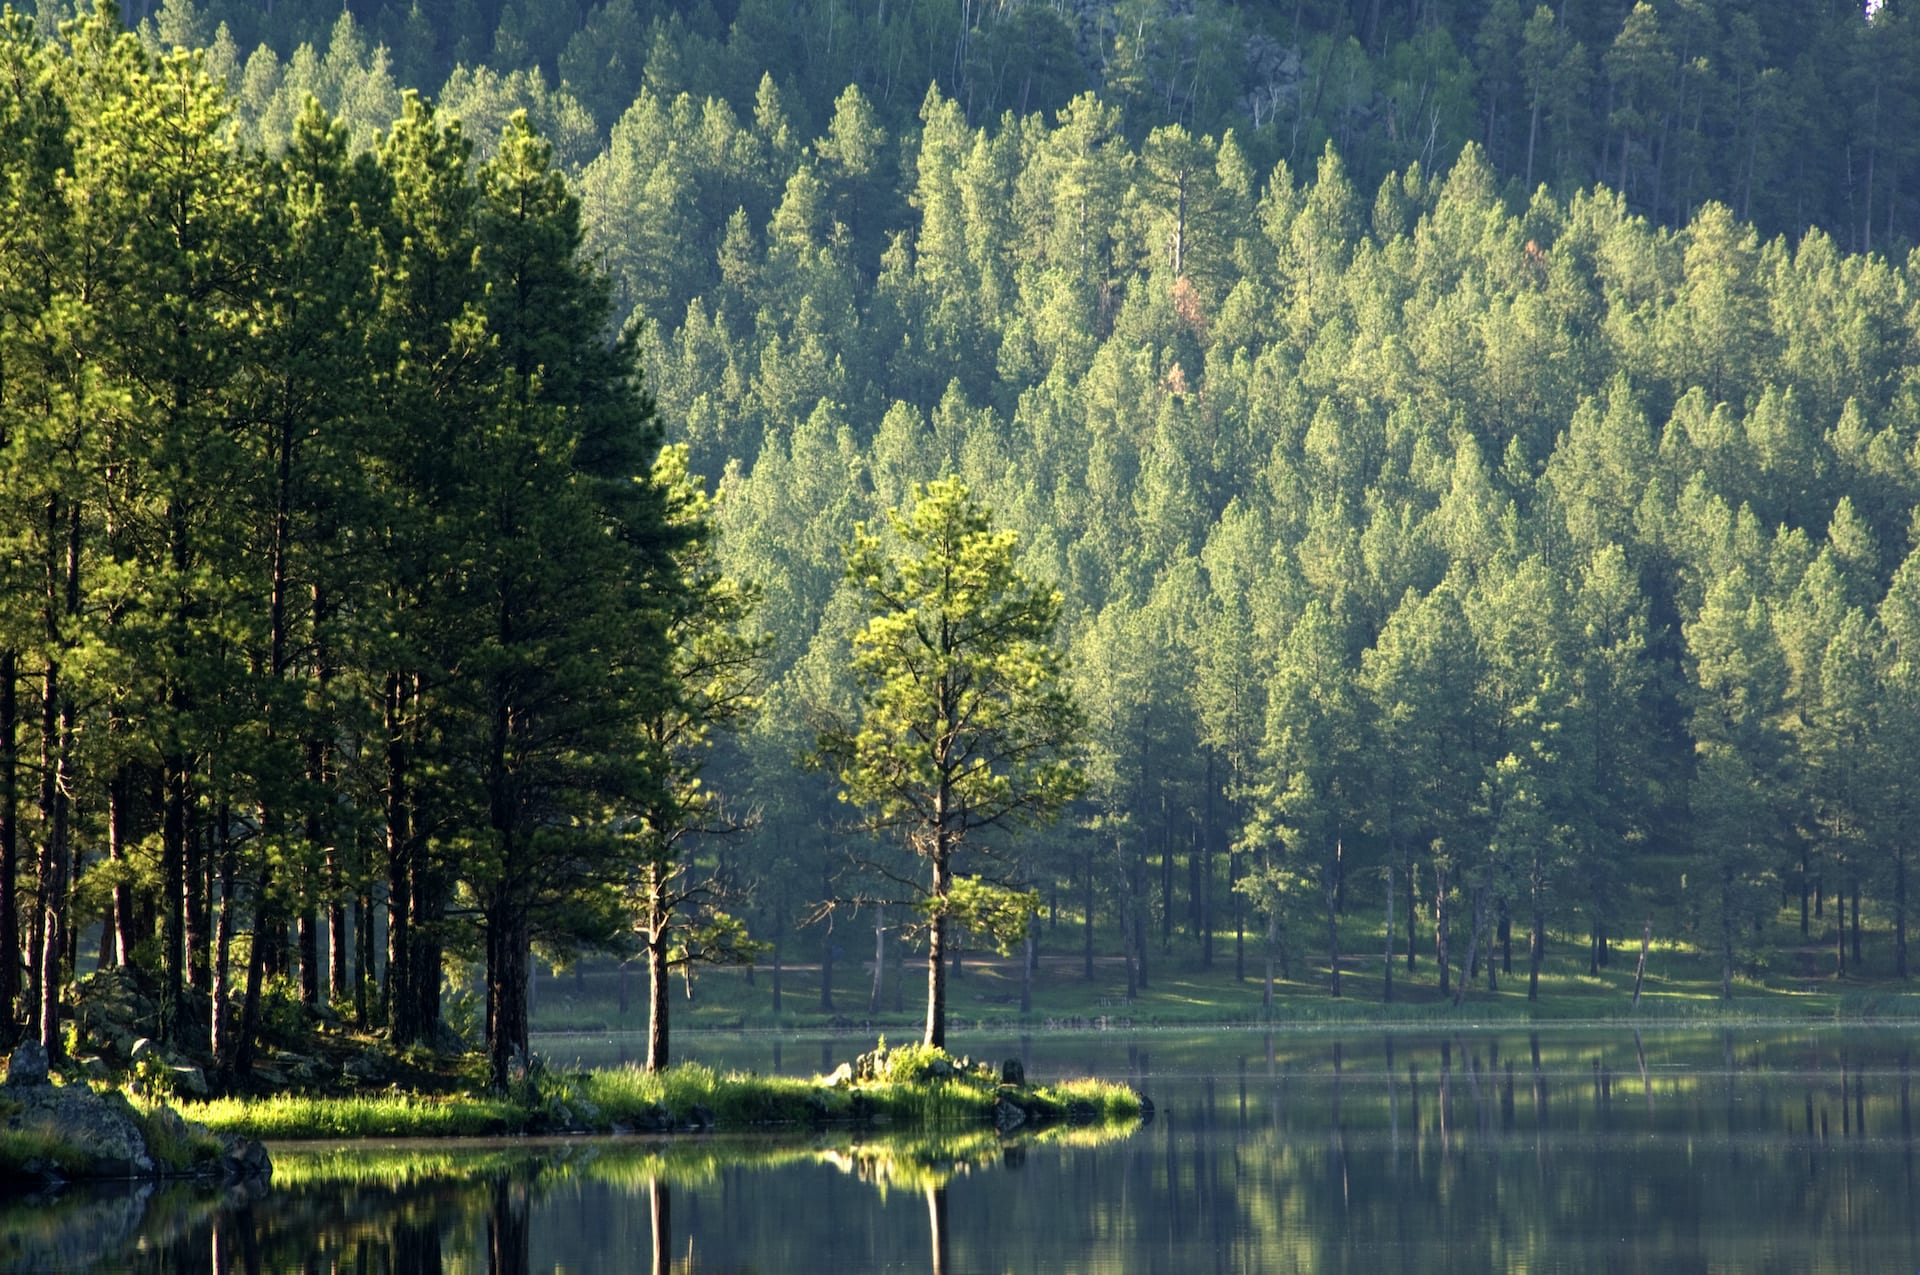 A peacefully calm lake with pine trees on the banks.